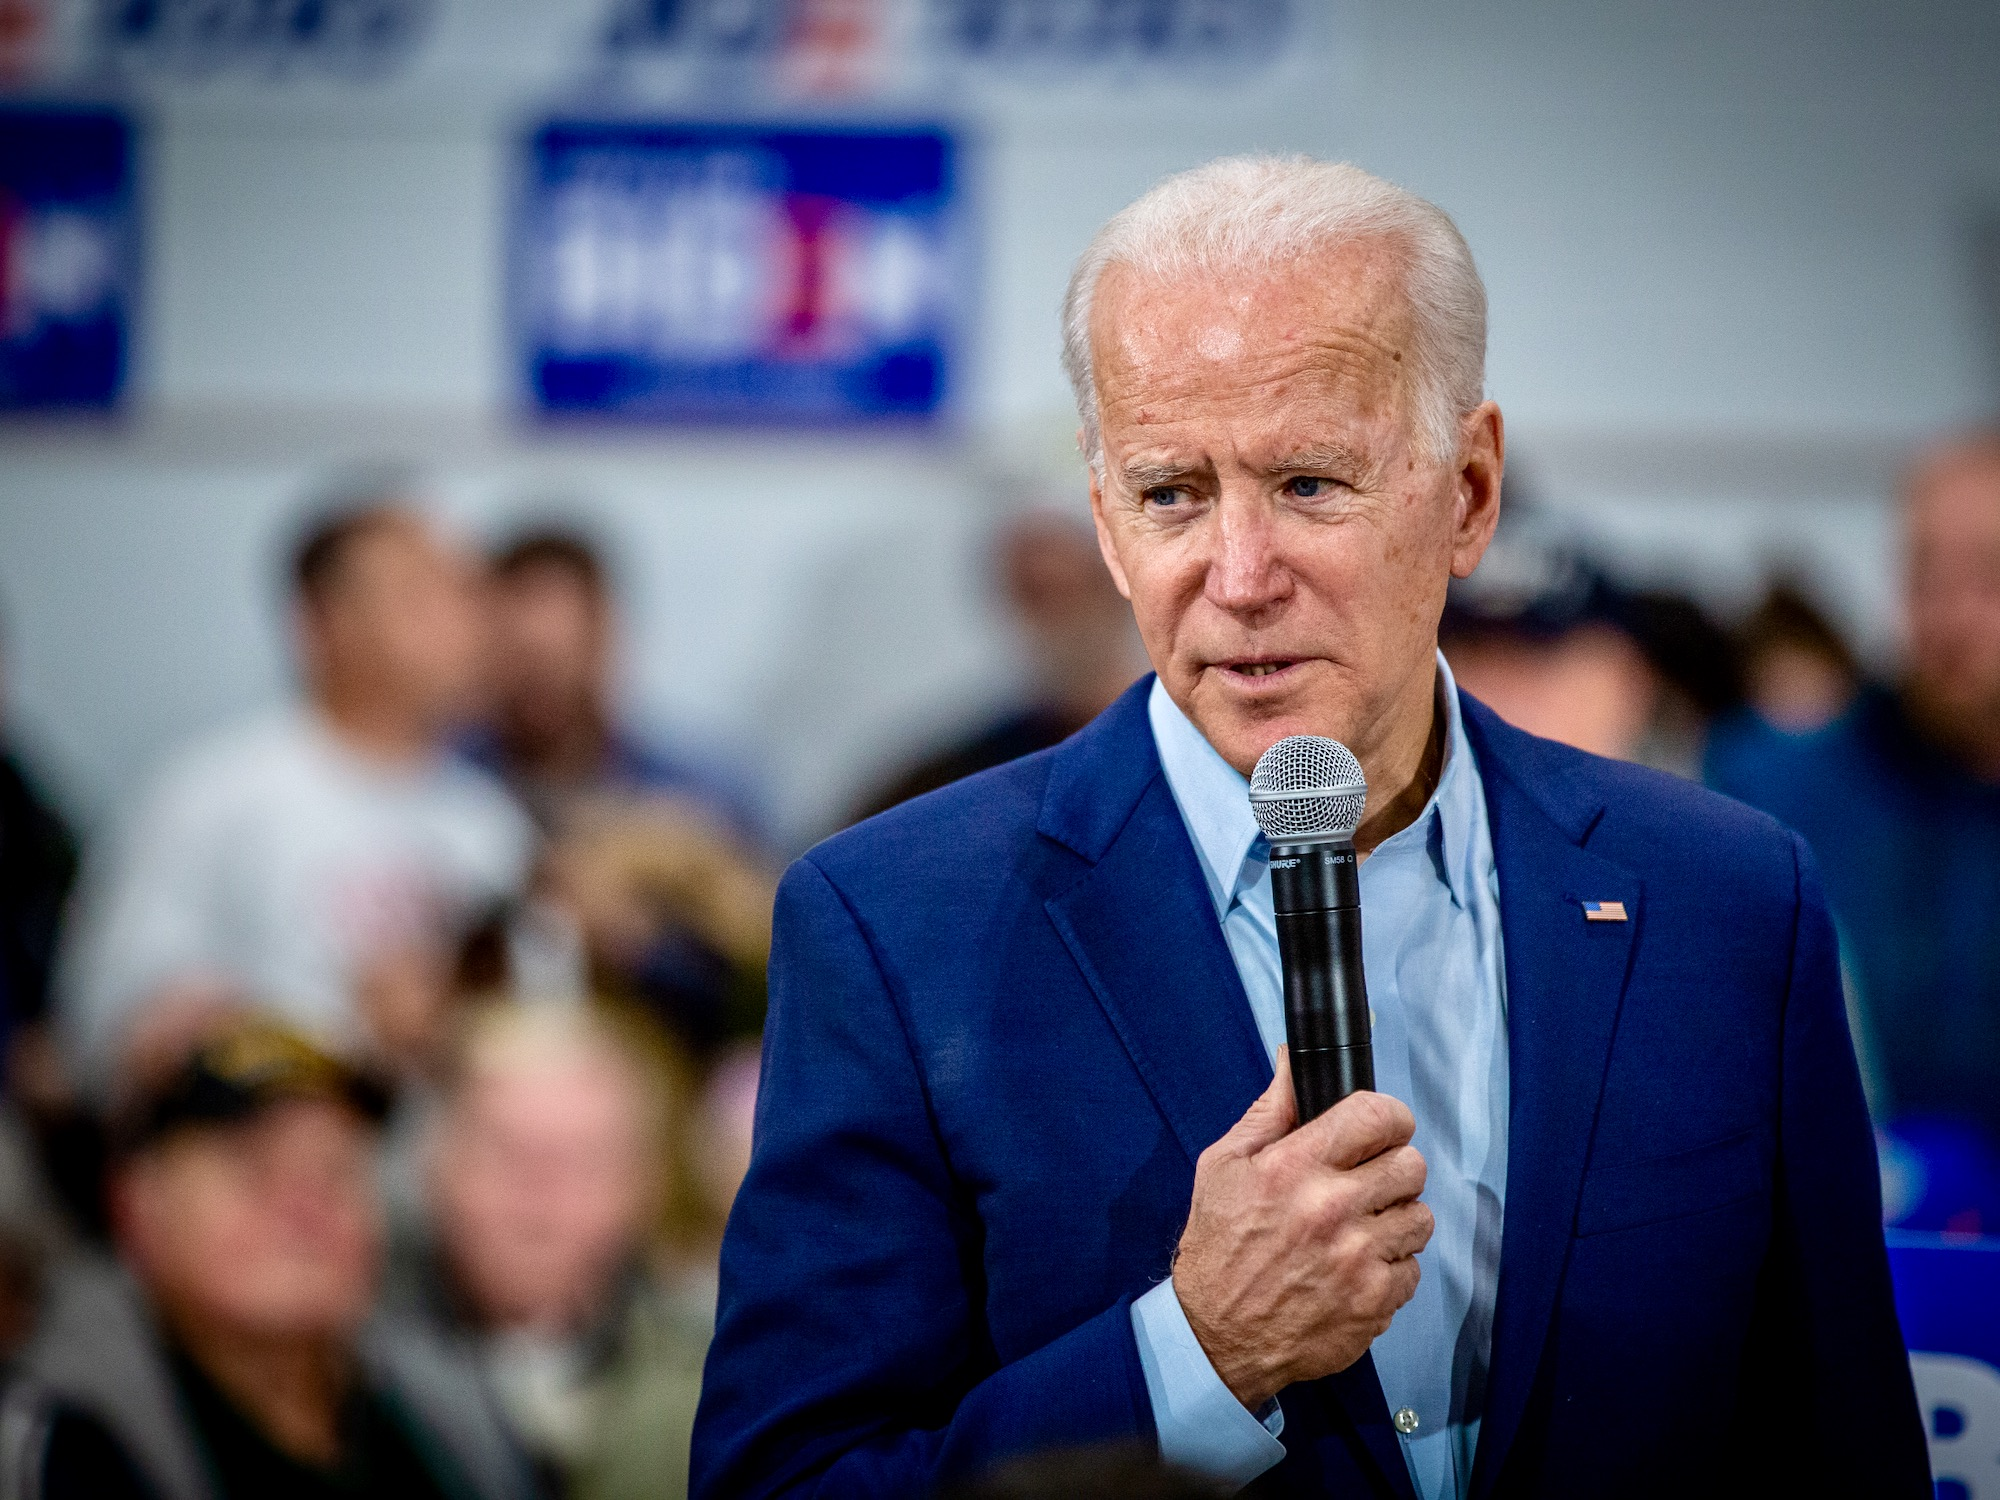 Joe Biden photo by Phil Roeder